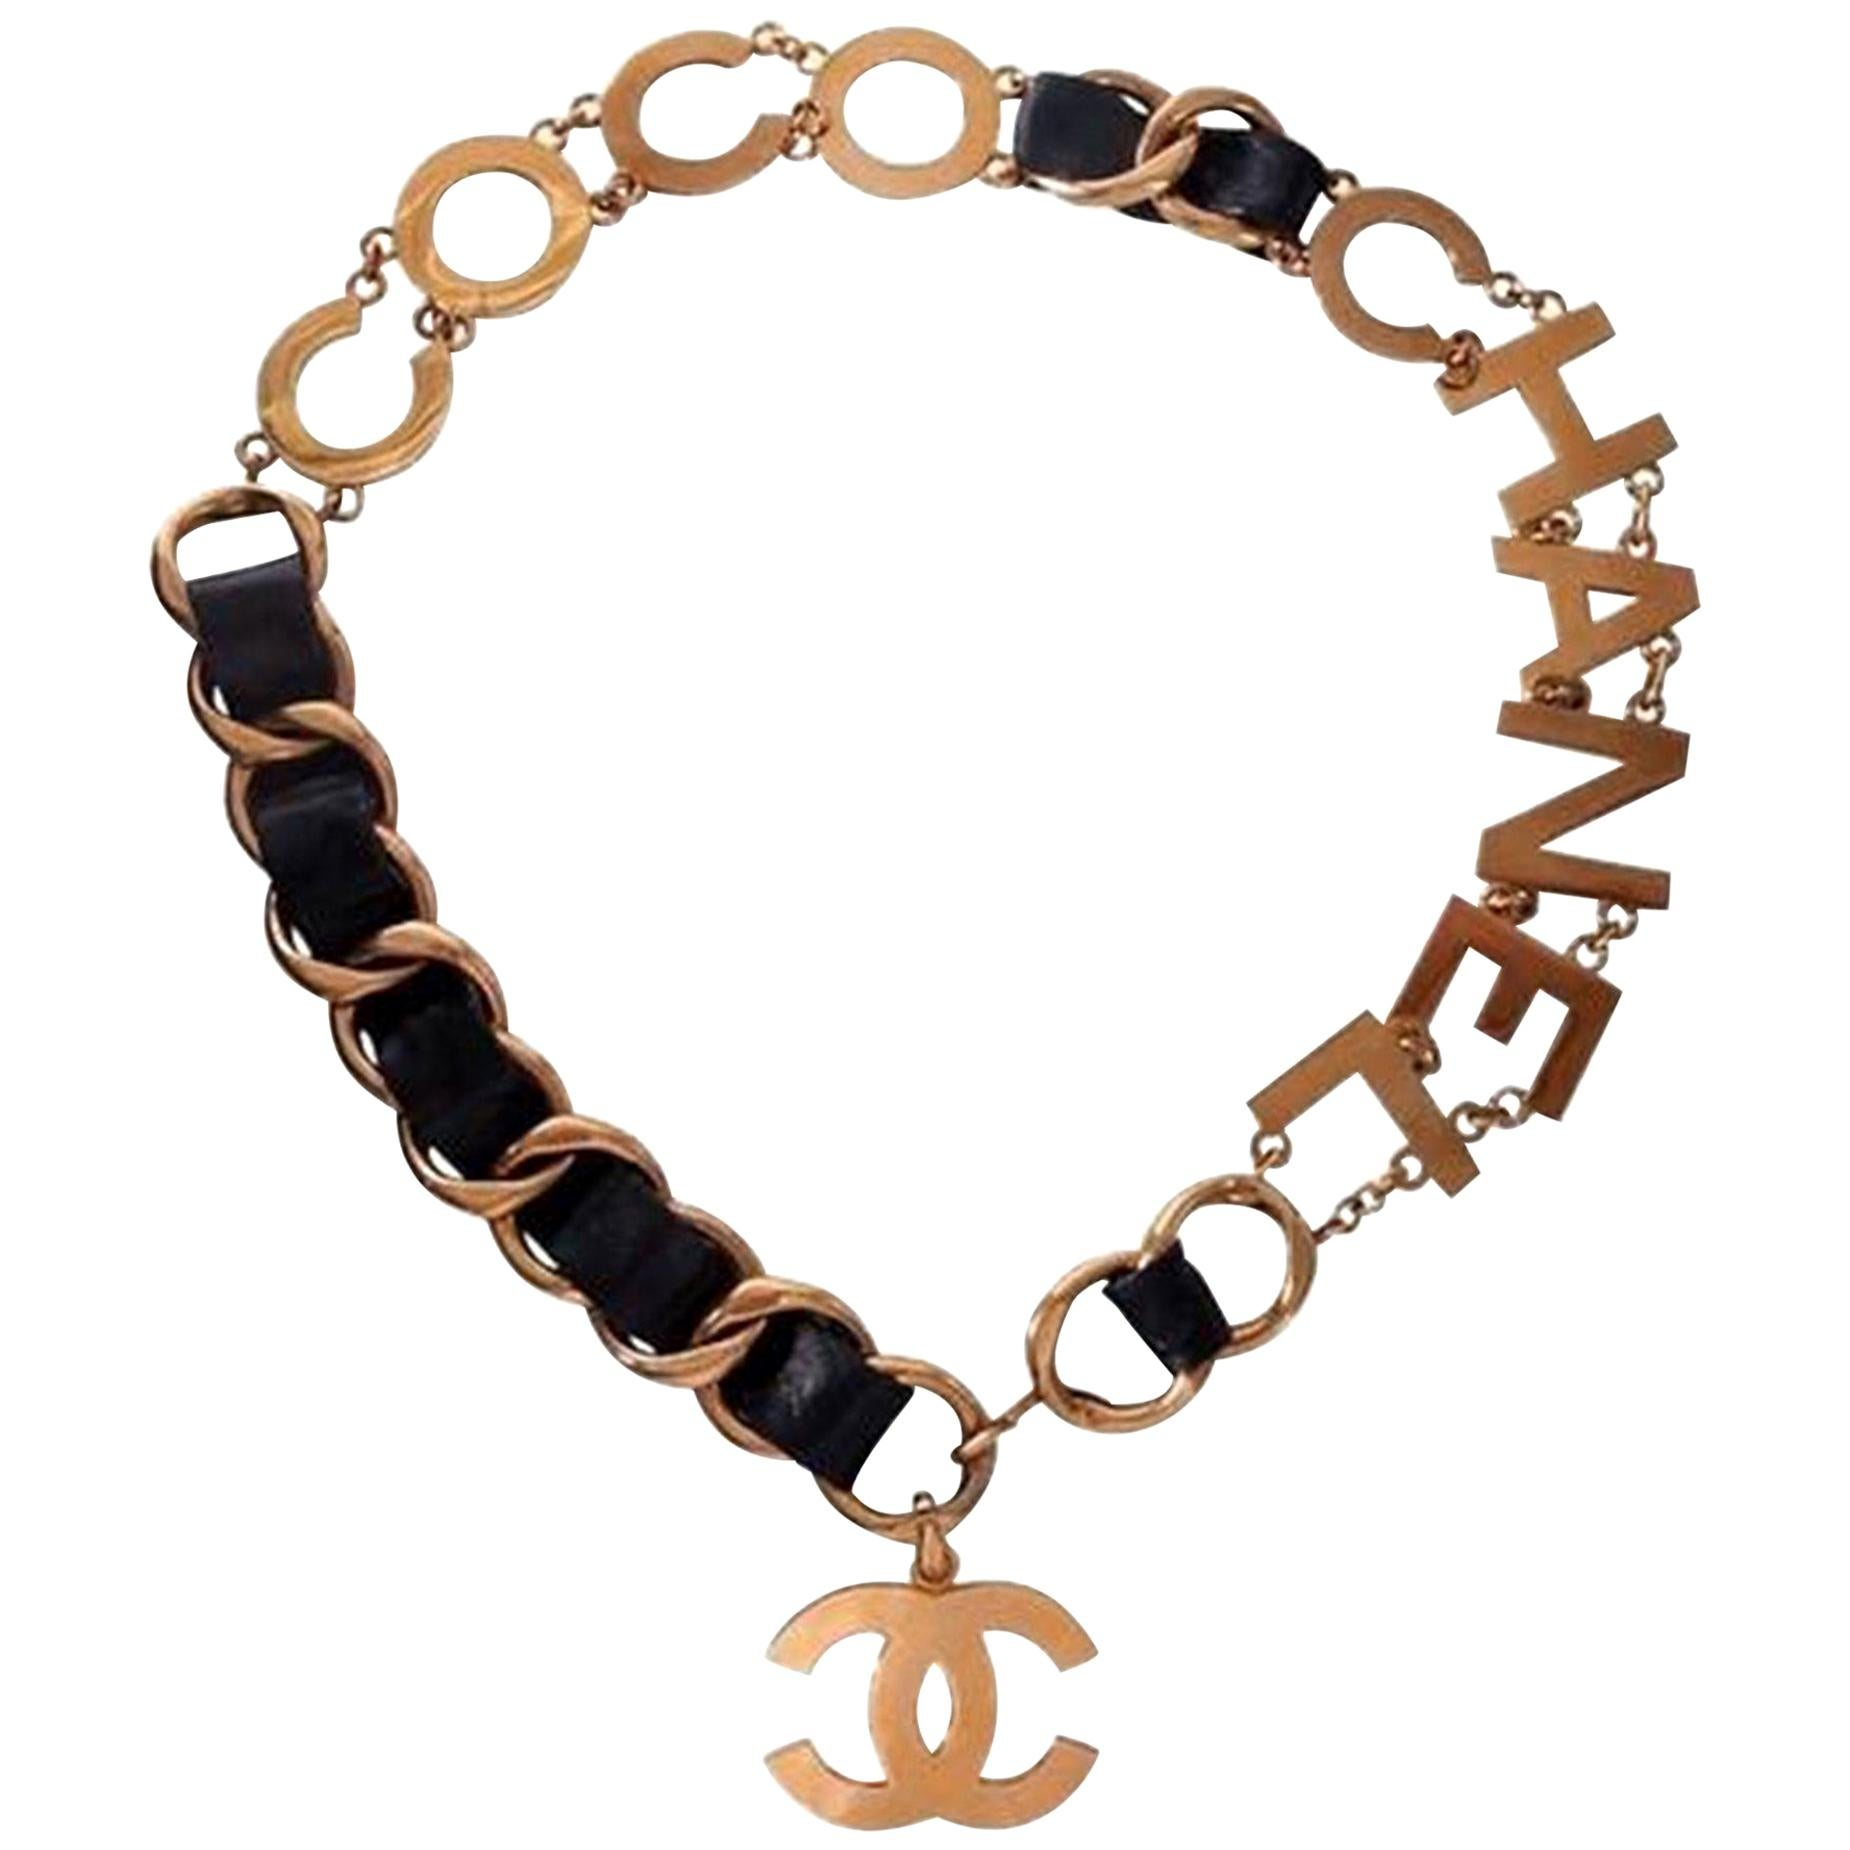 Chanel Vintage 90's Runway Collector COCO CHANEL Gold Letters Belt Necklace Rare